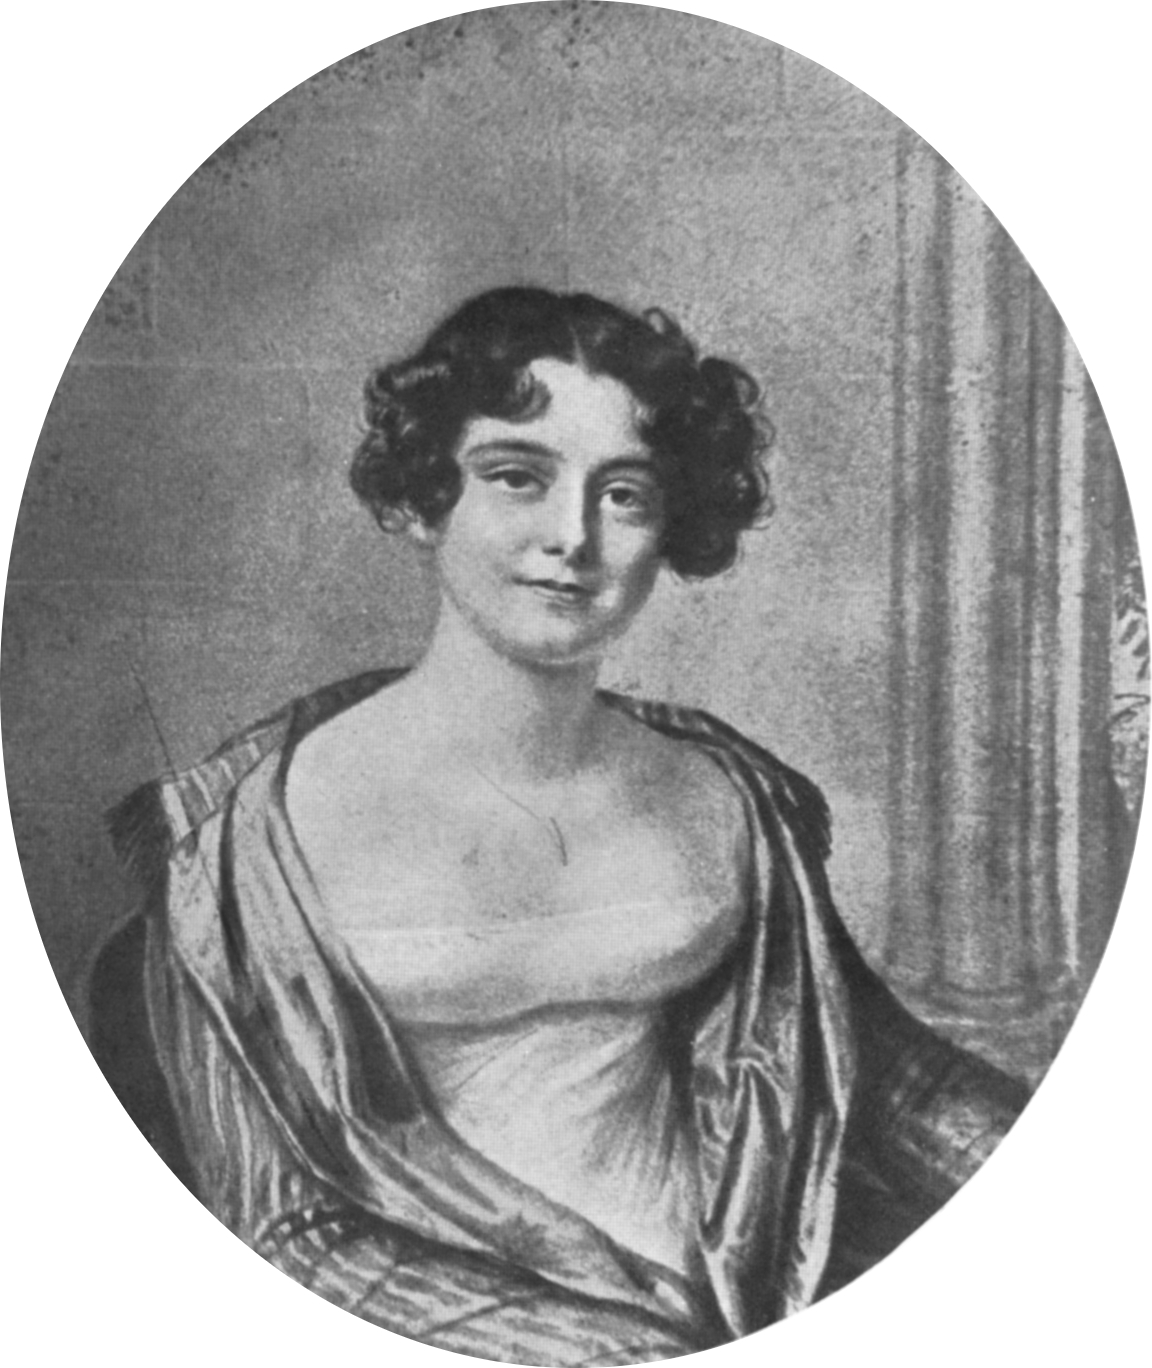 Portrait of Lady Jane Franklin at 24